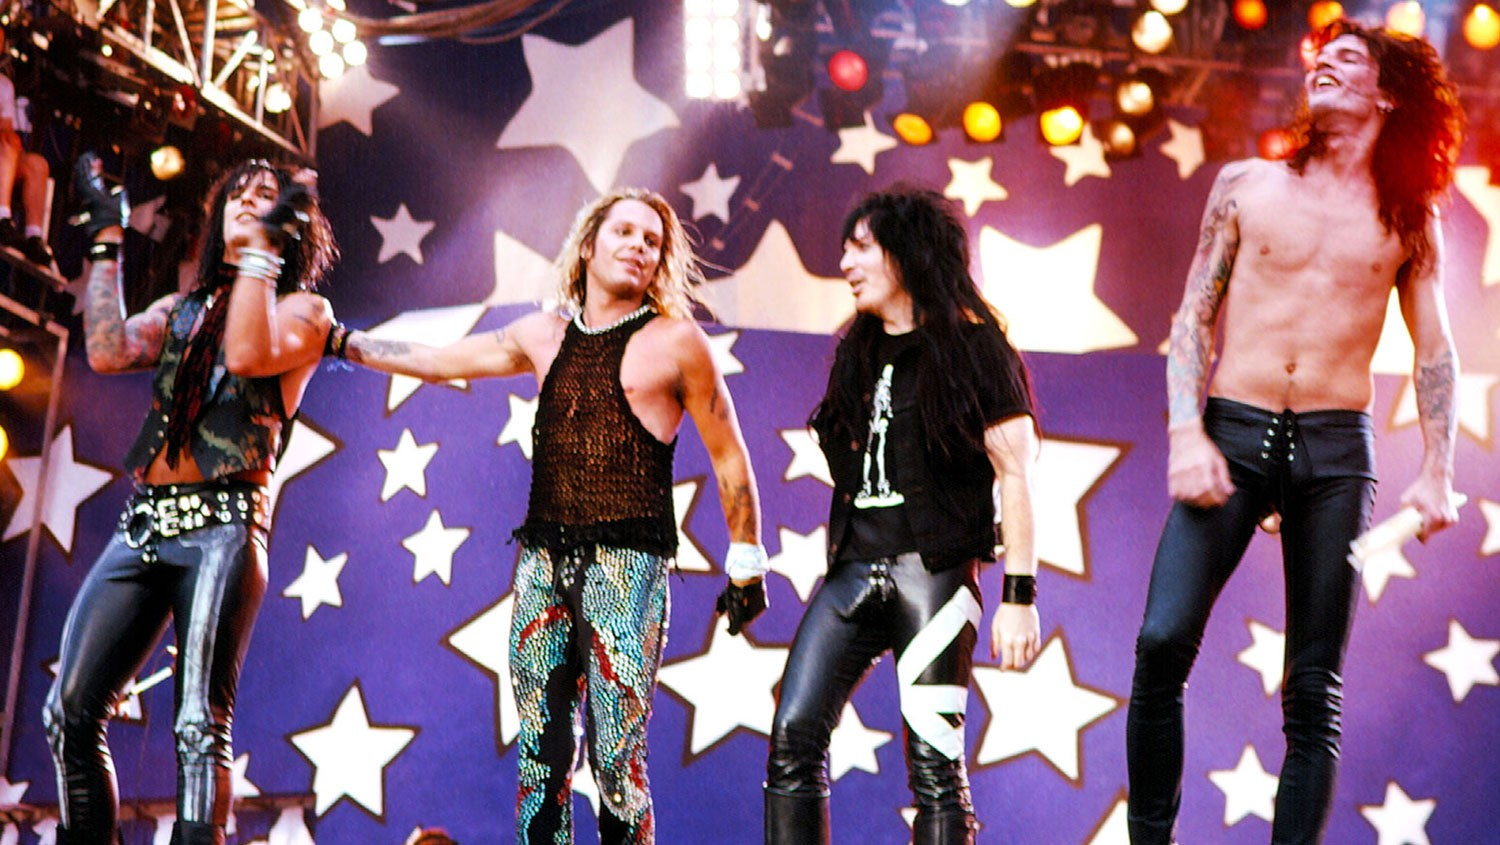 Mötley Crüe performing in 1989.